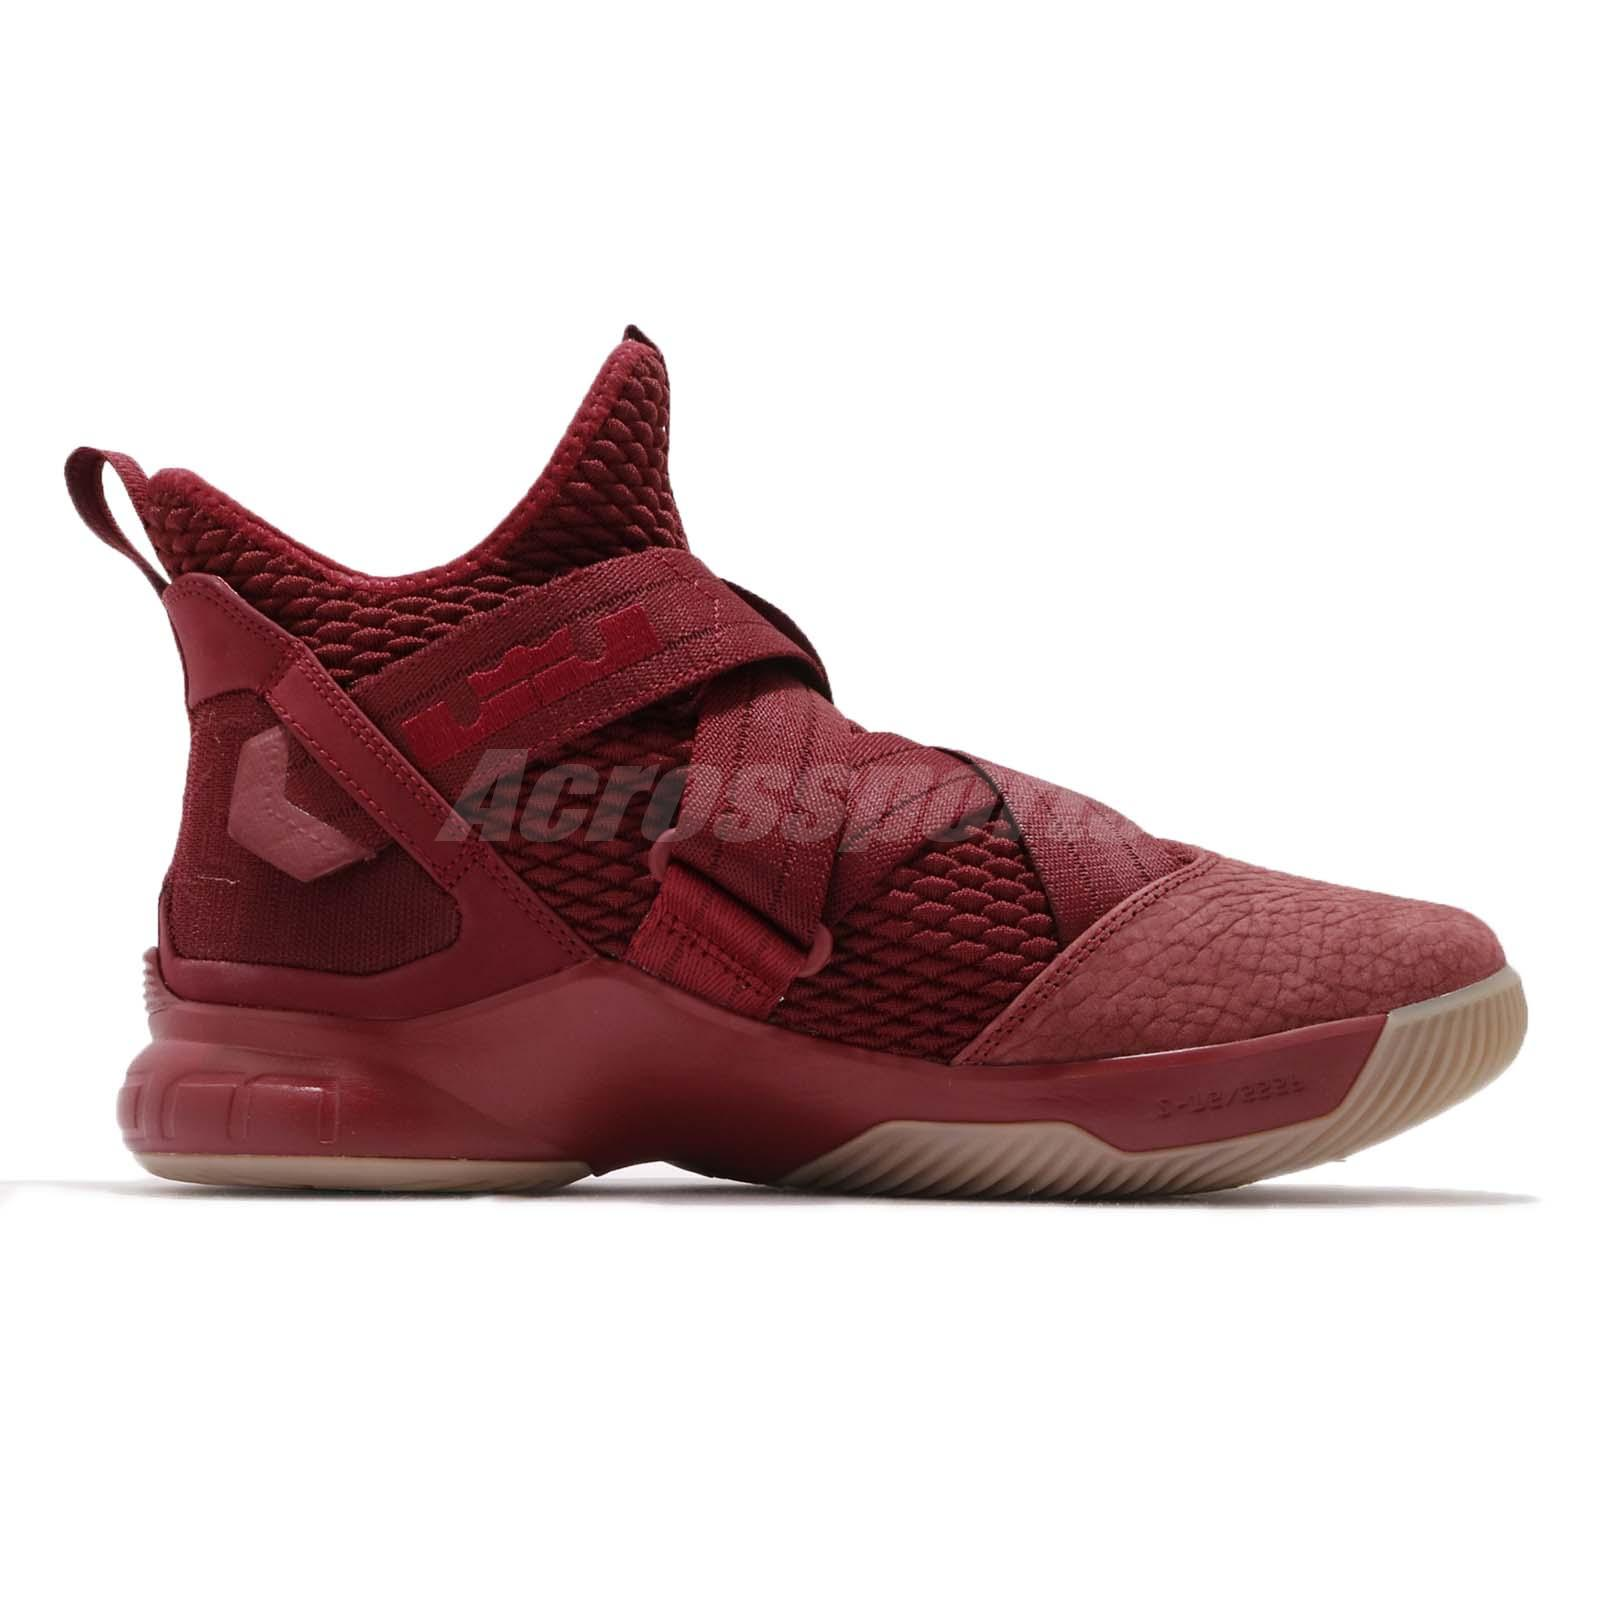 f808a6ed1f5 Nike LeBron Soldier XII 12 SFG EP James Team Red Basketball Shoes ...